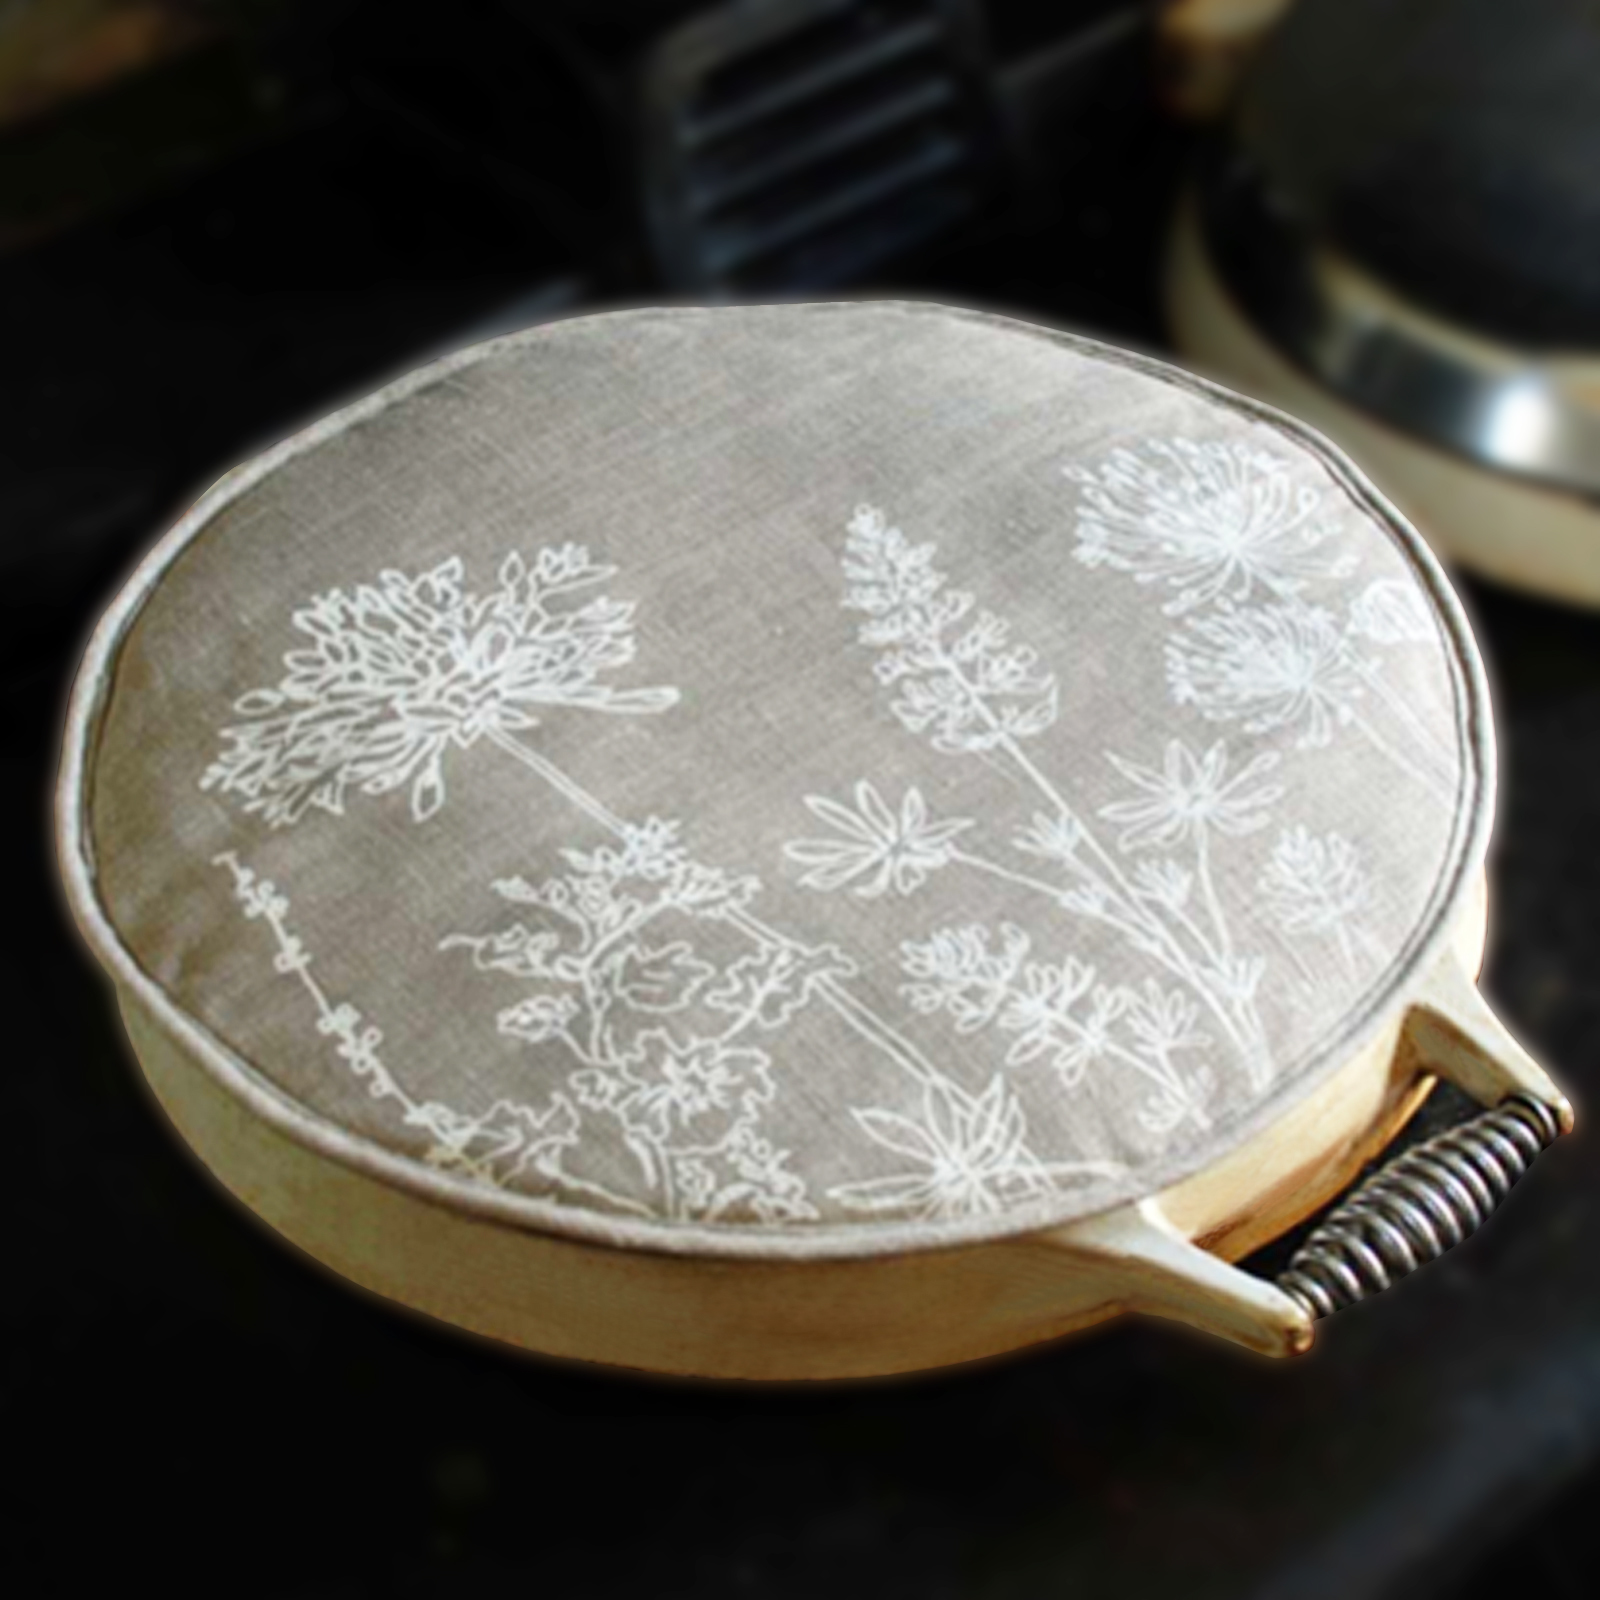 Aga Hob Cover - Country Garden Collection by Helen Round